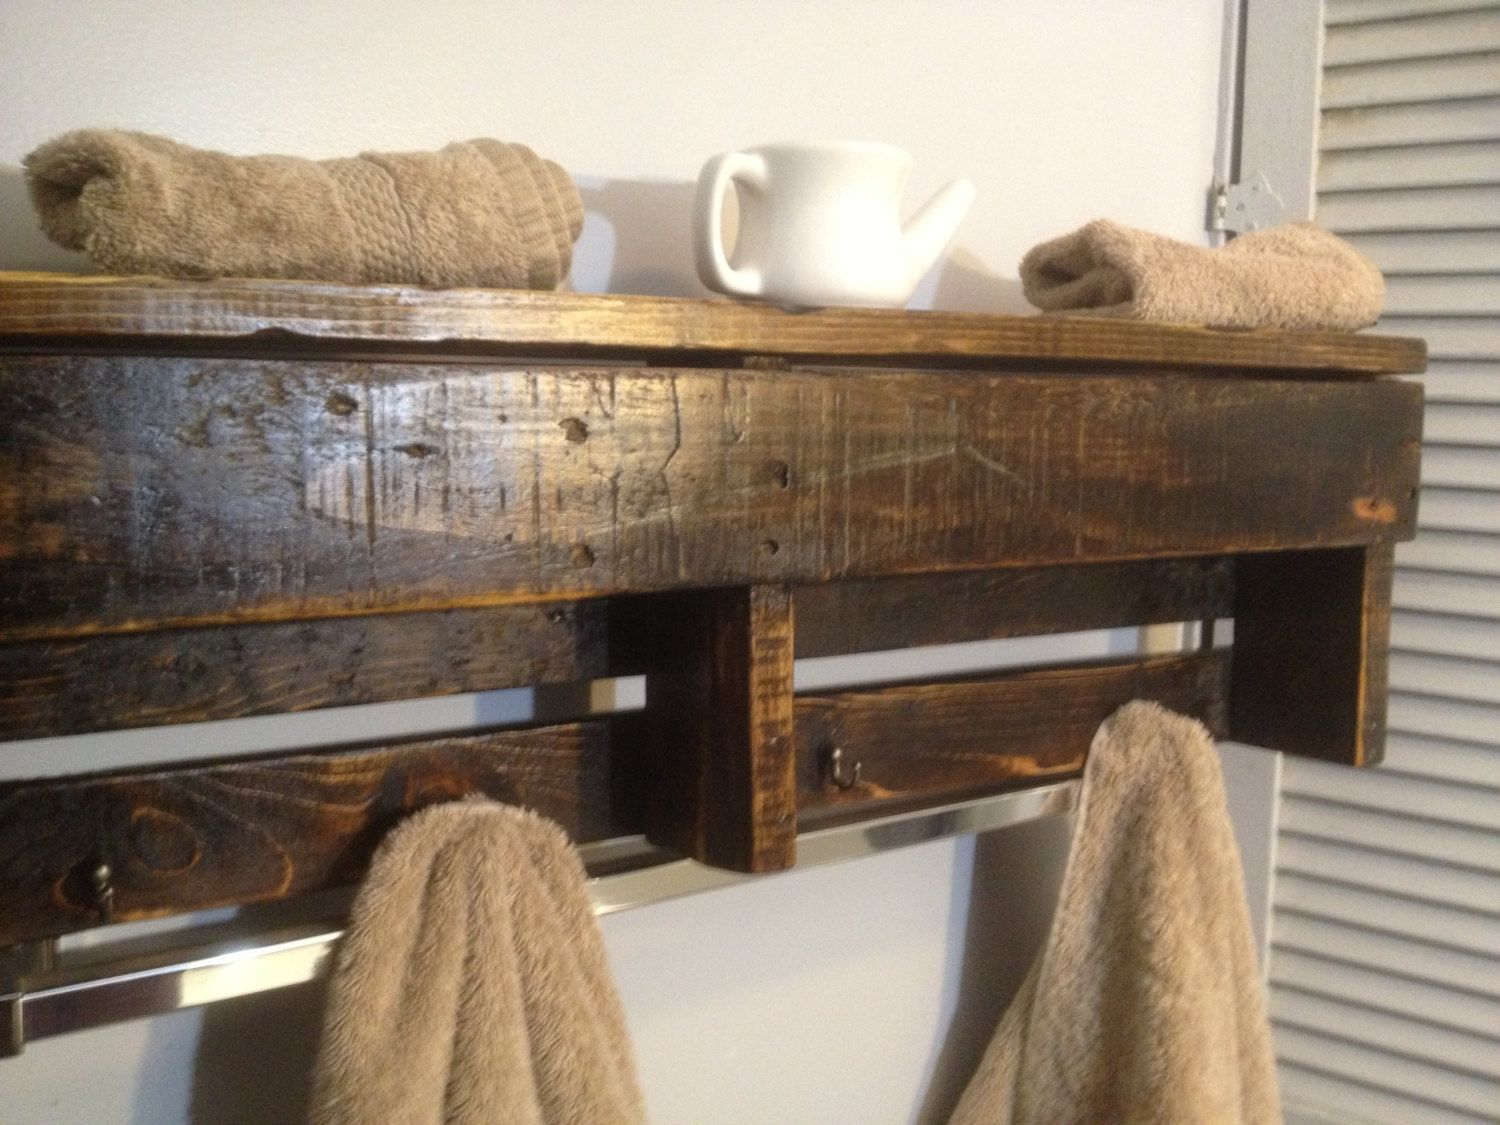 Pretentious Lastest Reclaimed Barn Wood Bathroom Shelves By On Etsy Reclaimed Wood Bathroom Shelves Floating Wooden Shelves Bathroom bathroom Wooden Shelves In Bathroom